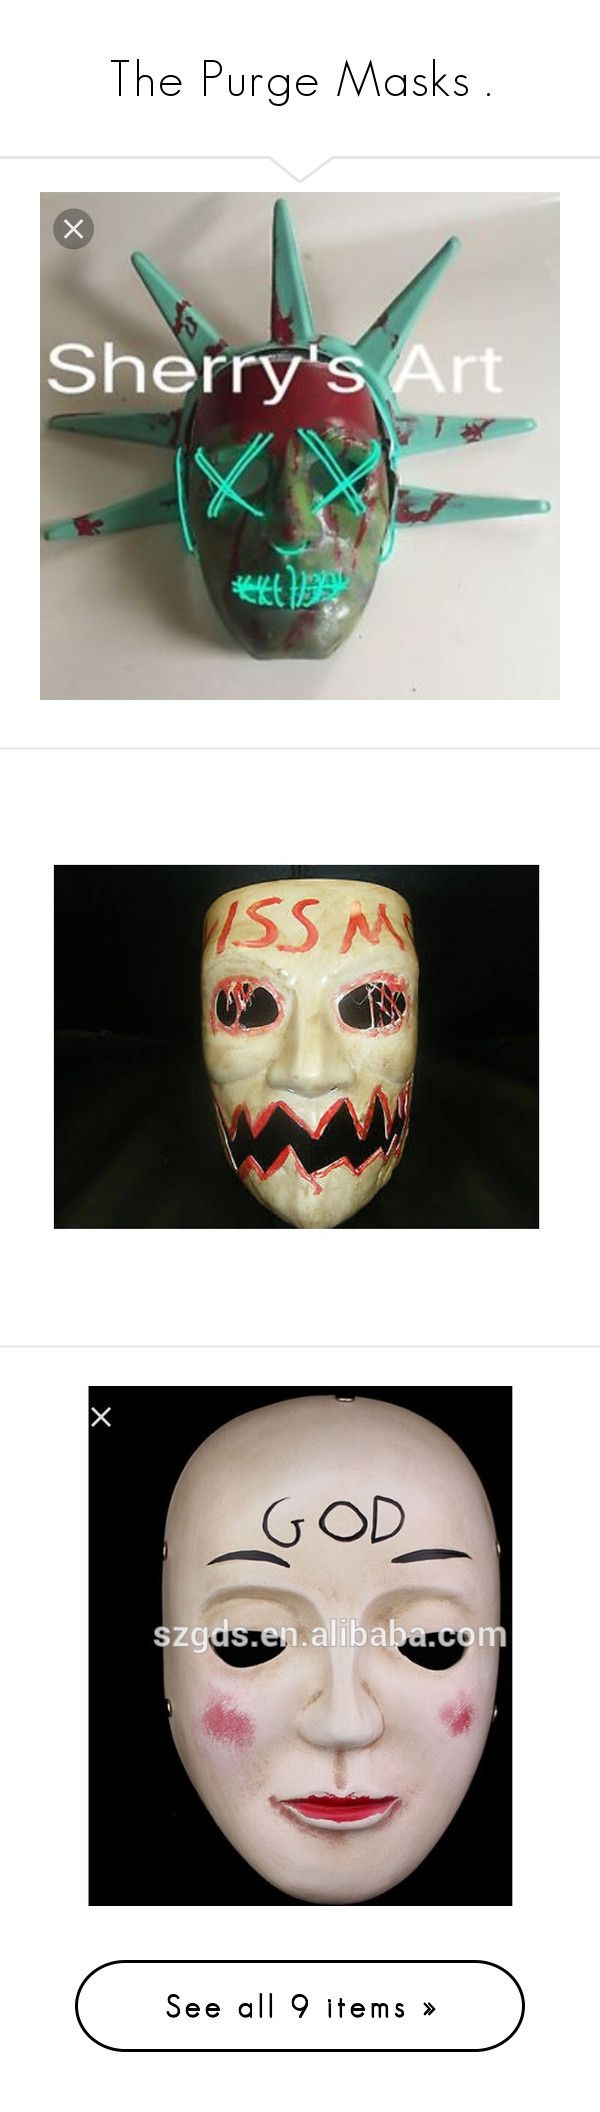 Best 25+ Purge mask ideas on Pinterest | College costumes, College ...